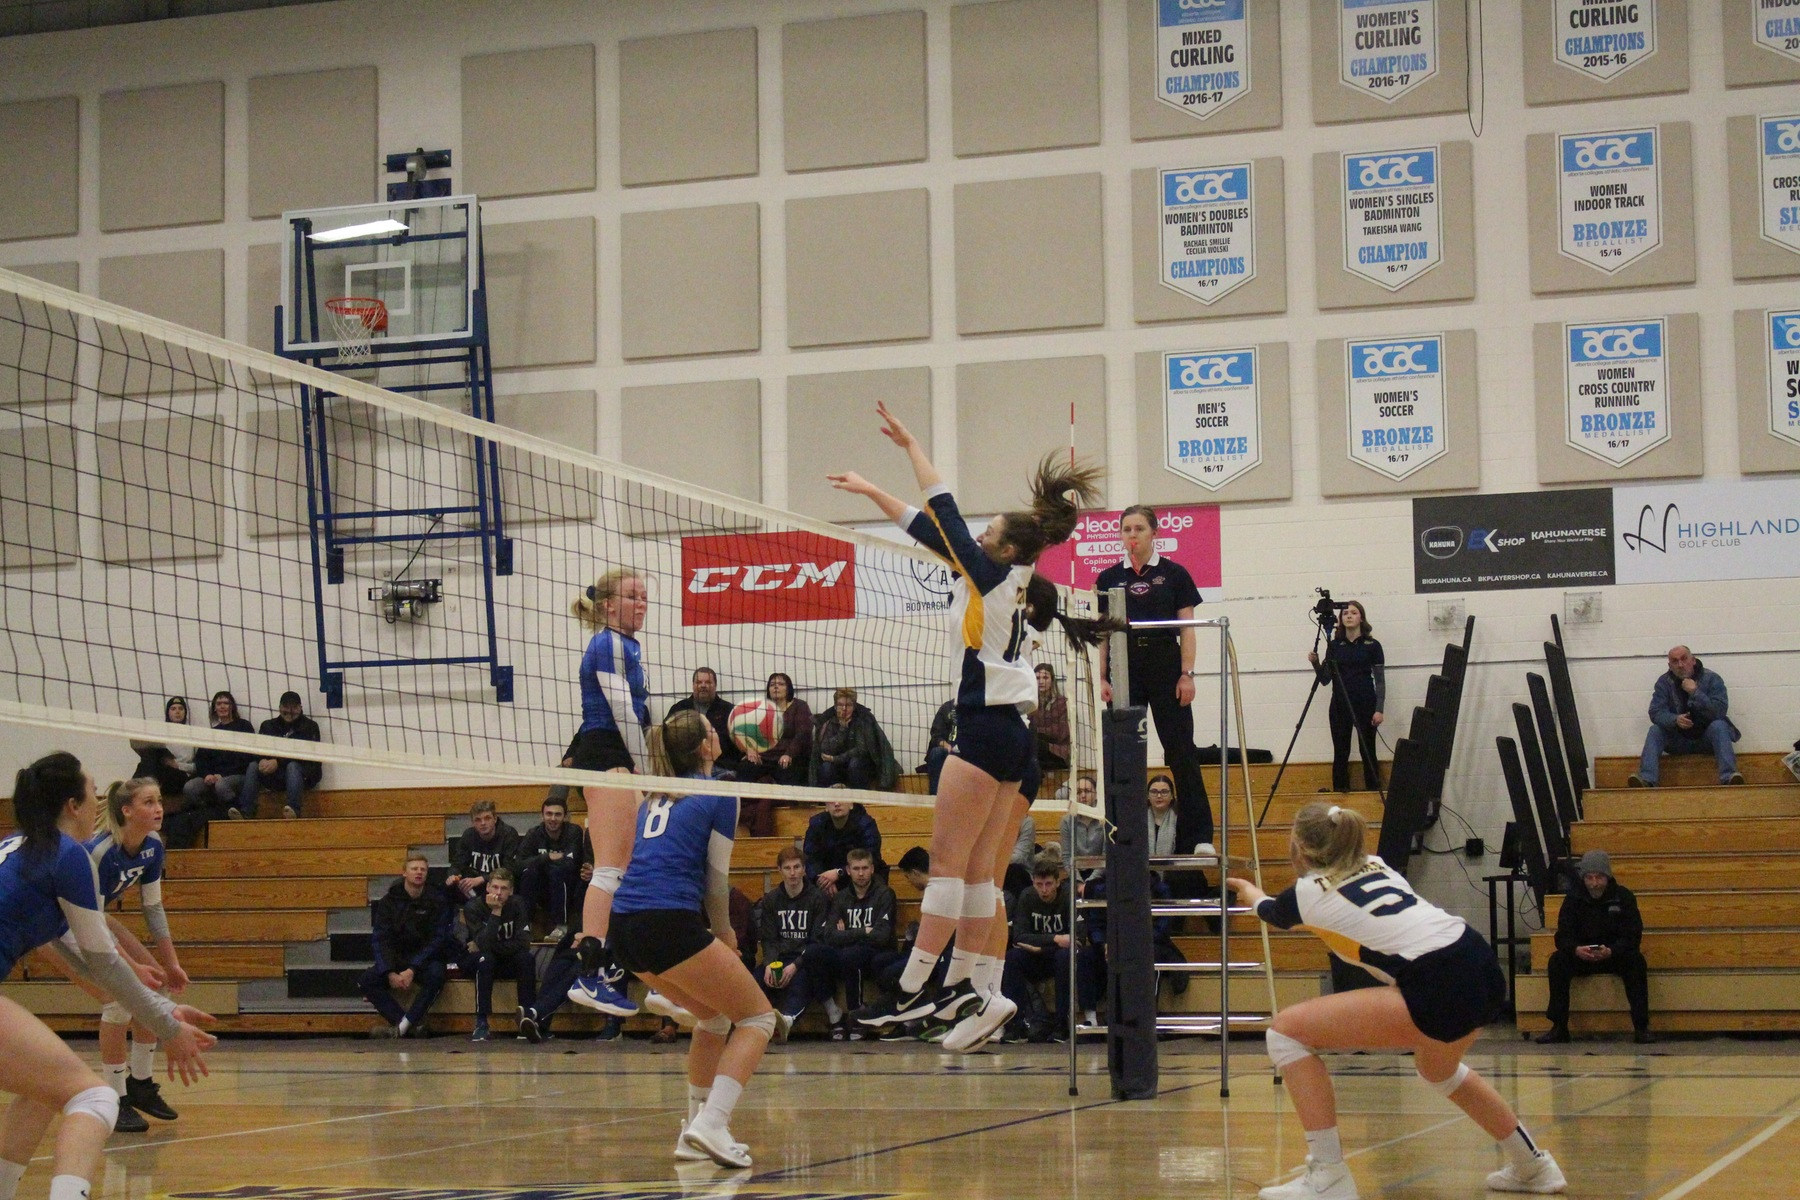 Thunder falls to Eagles in 3 sets